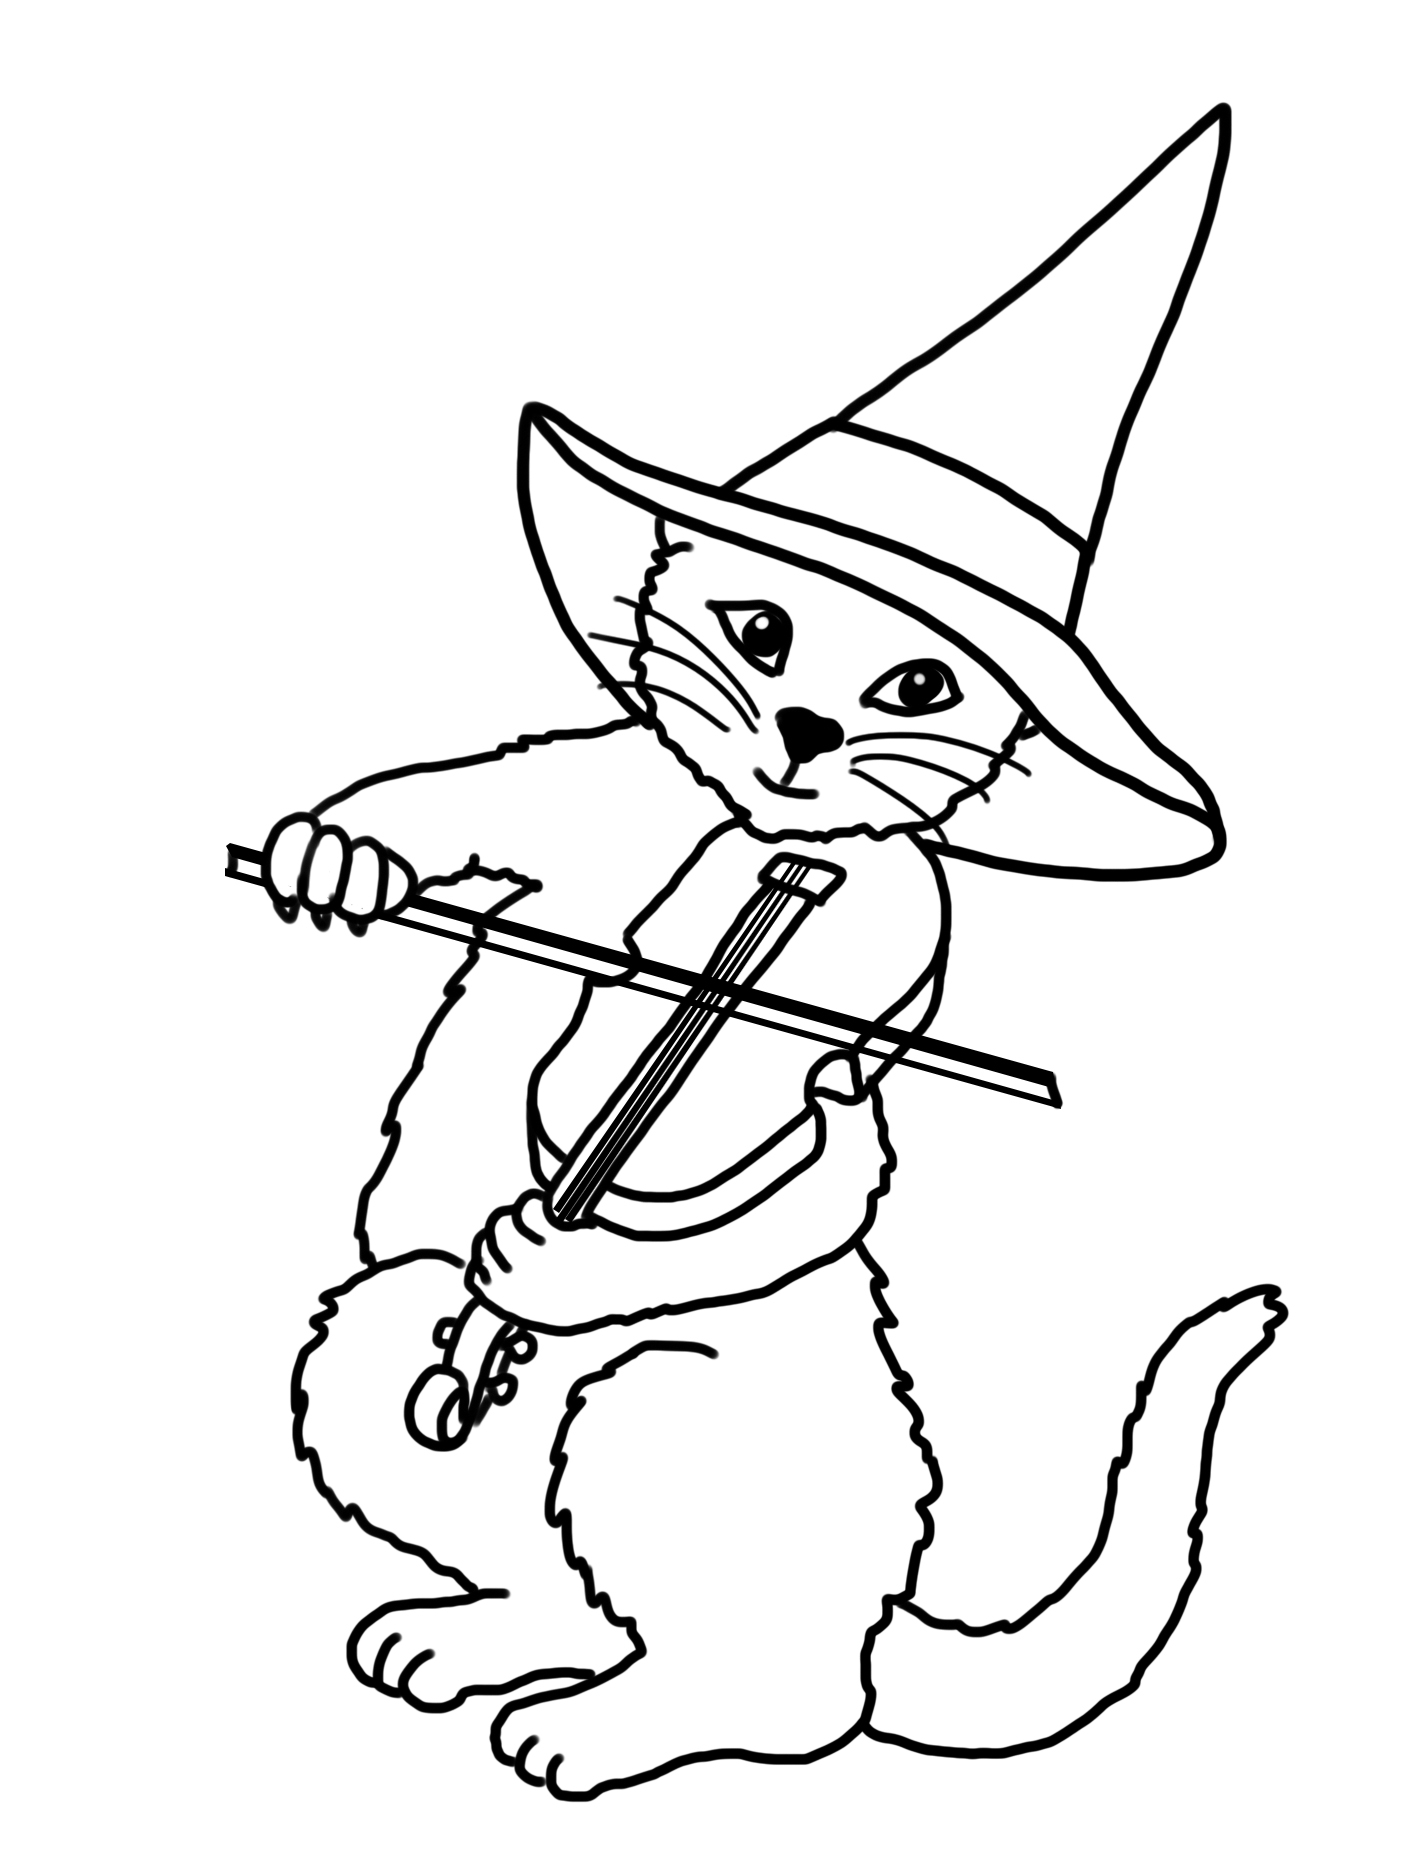 Cat drawing with violin